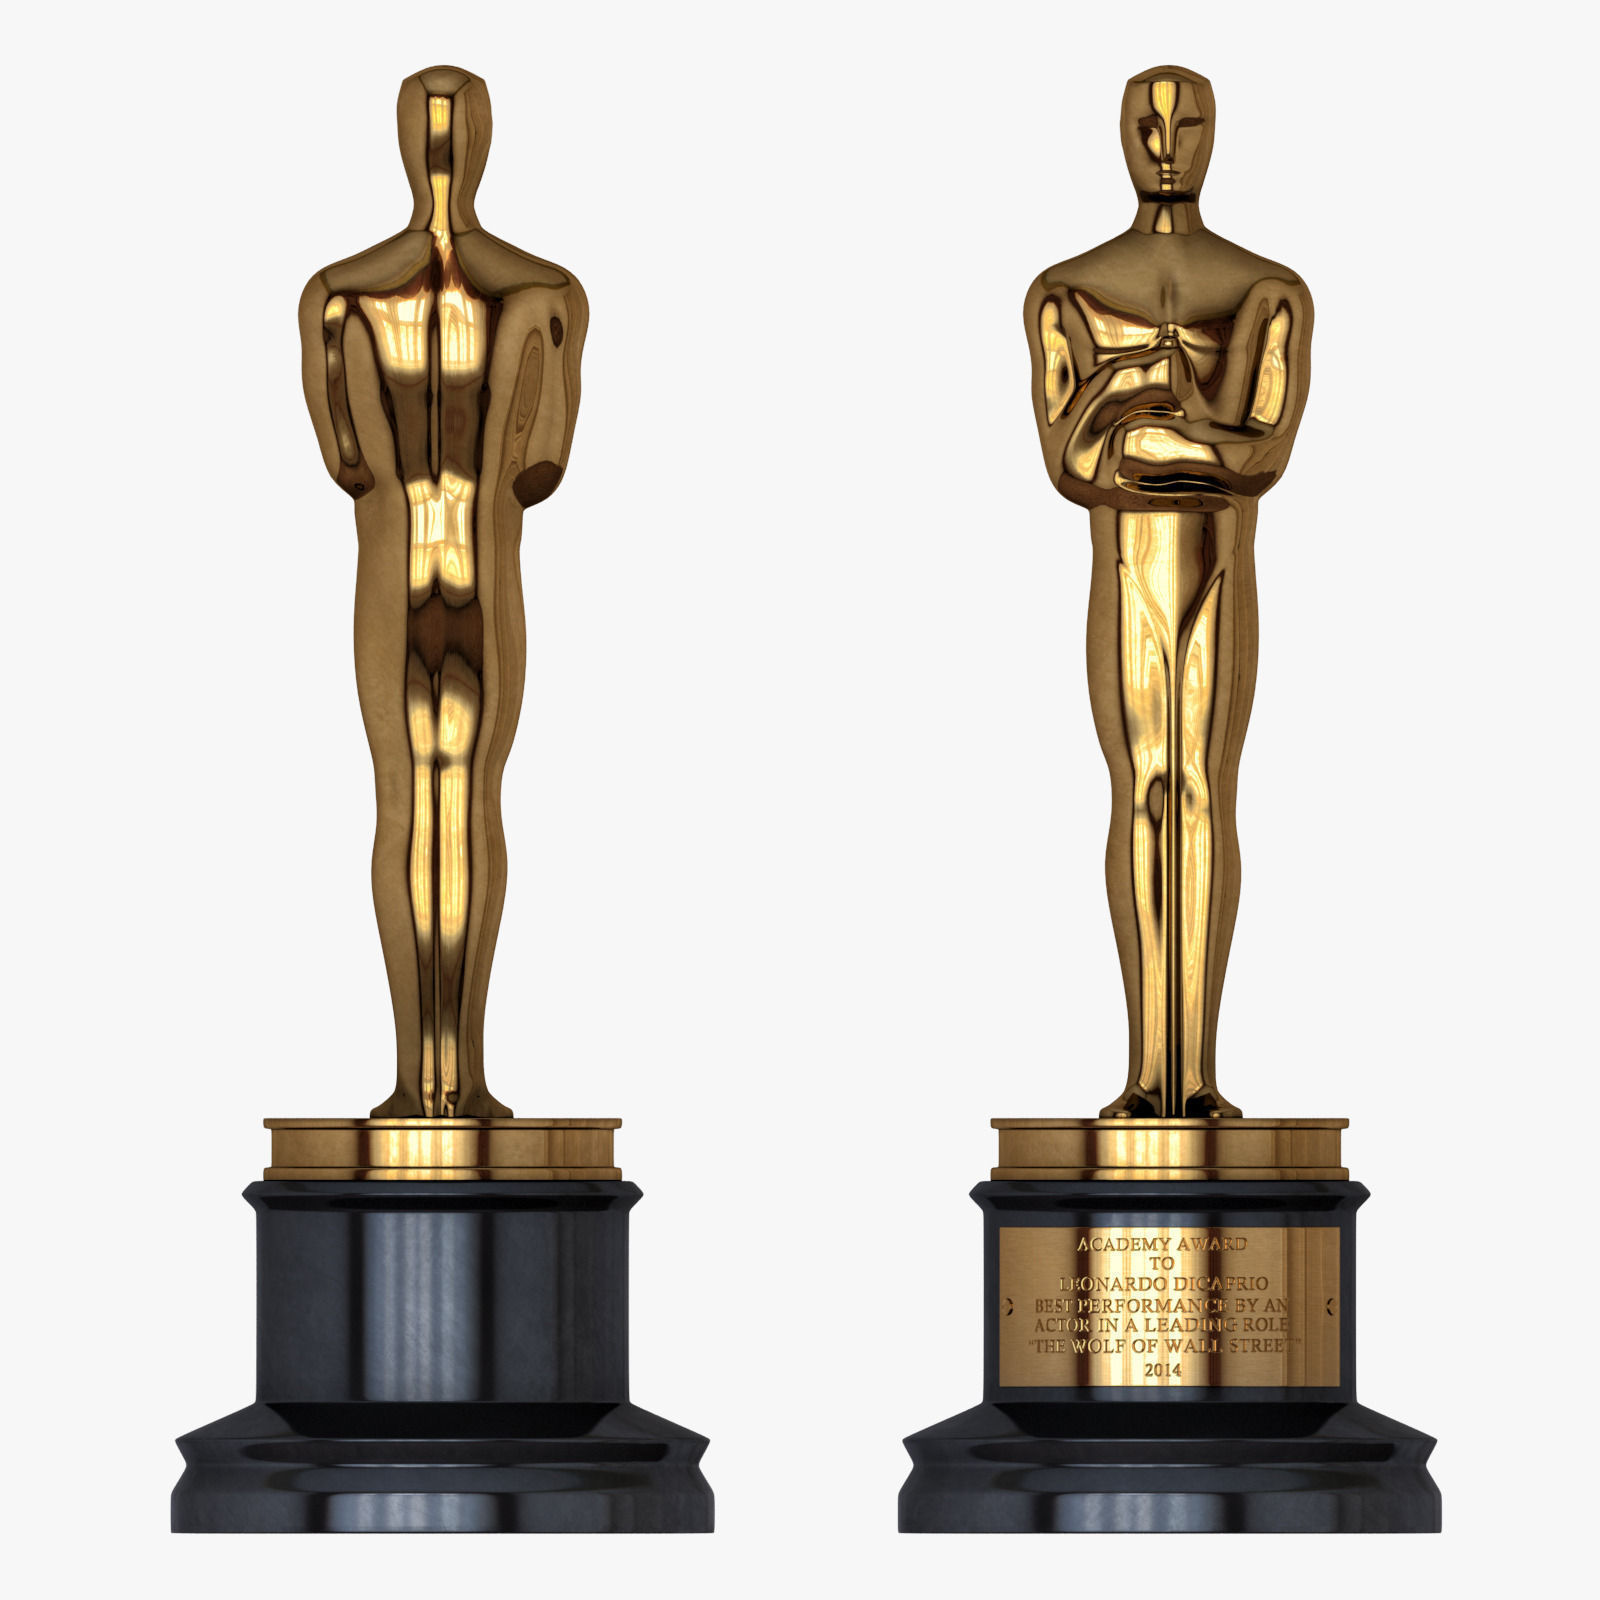 2565978 additionally 1951 Quo Vadis in addition Shyamalan Week Bam Best Picture Profile The Sixth Sense as well Oscars Animation Race Big Studio Offerings Small Scale Indies 949732 moreover The Oscar. on oscar award to scale